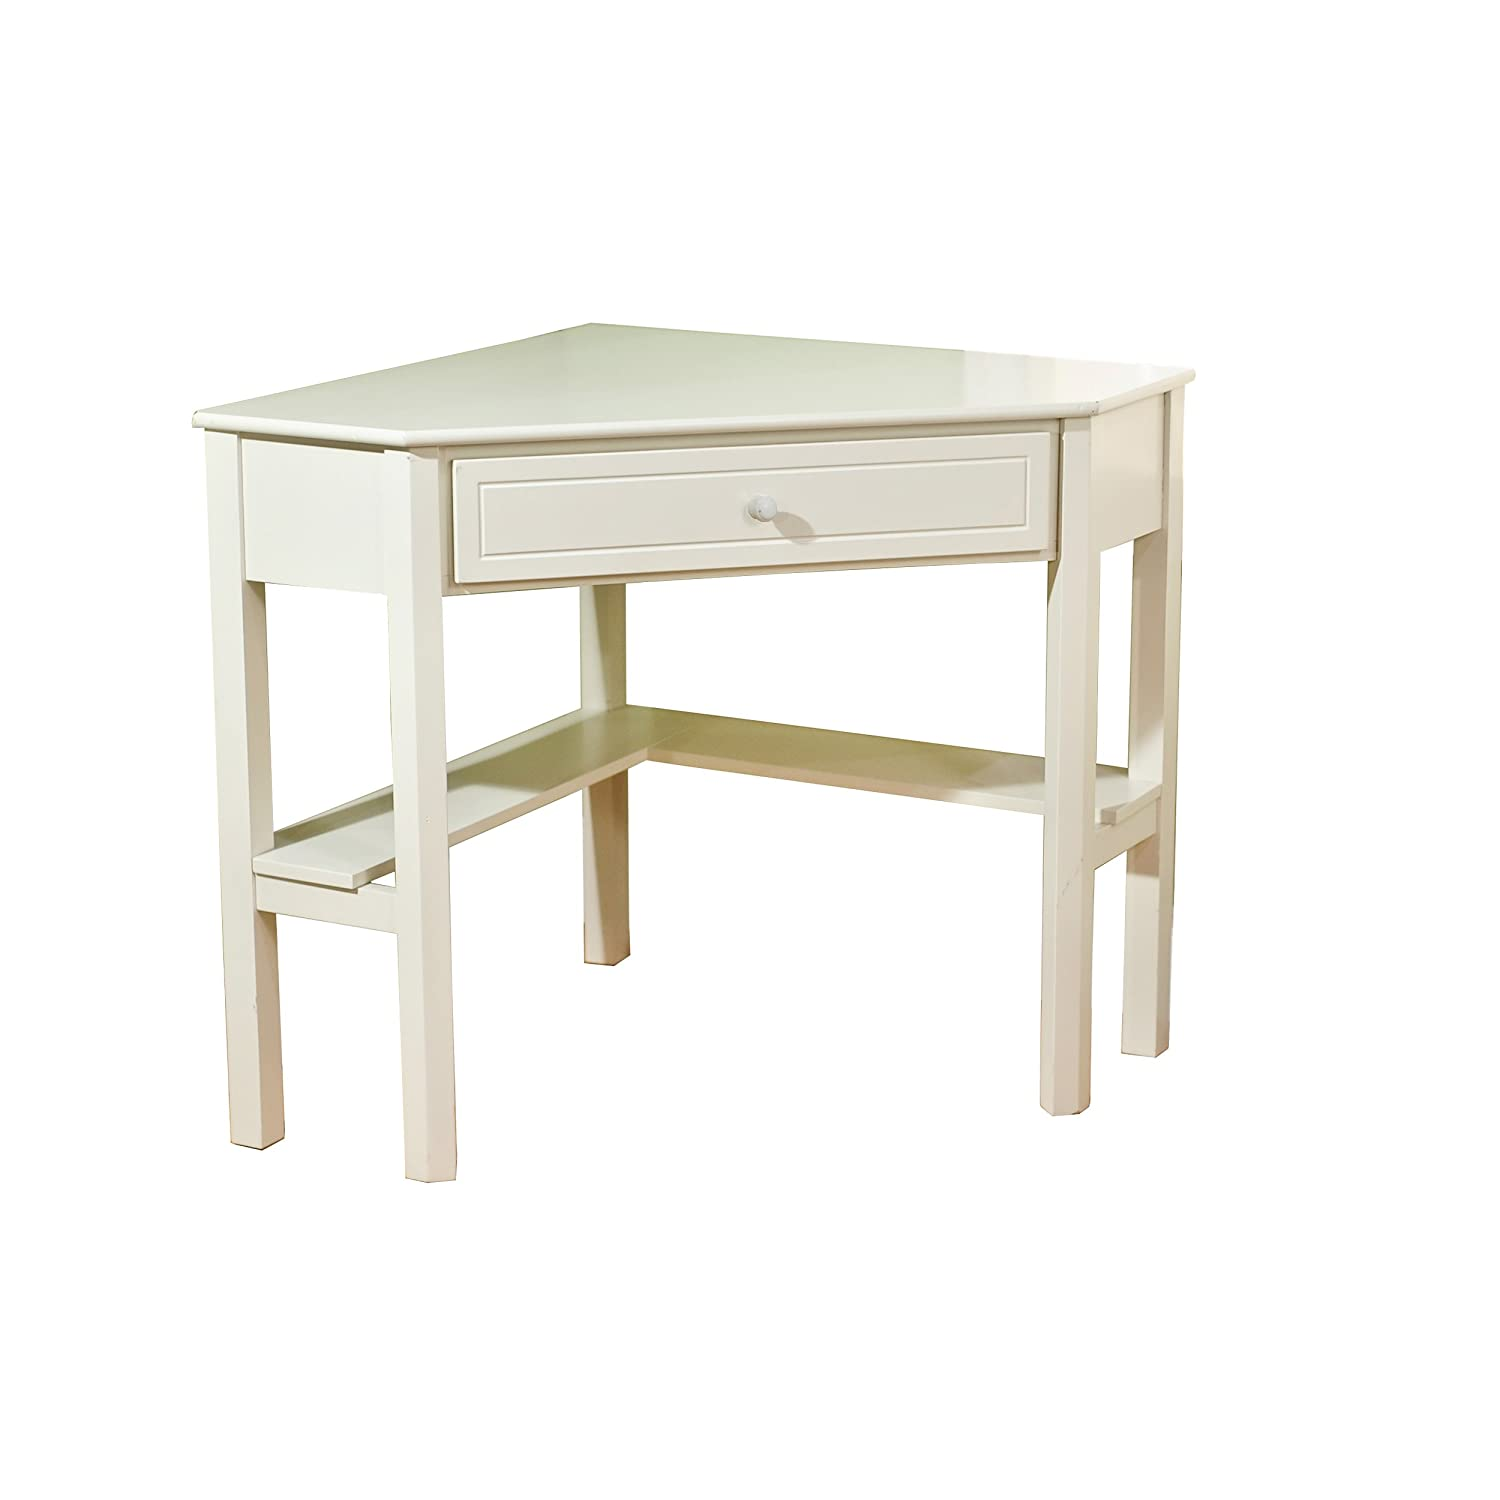 Amazon.com: Target Marketing Systems Wood Corner Desk With One Drawer And  One Storage Shelf, Antique White Finish: Kitchen U0026 Dining